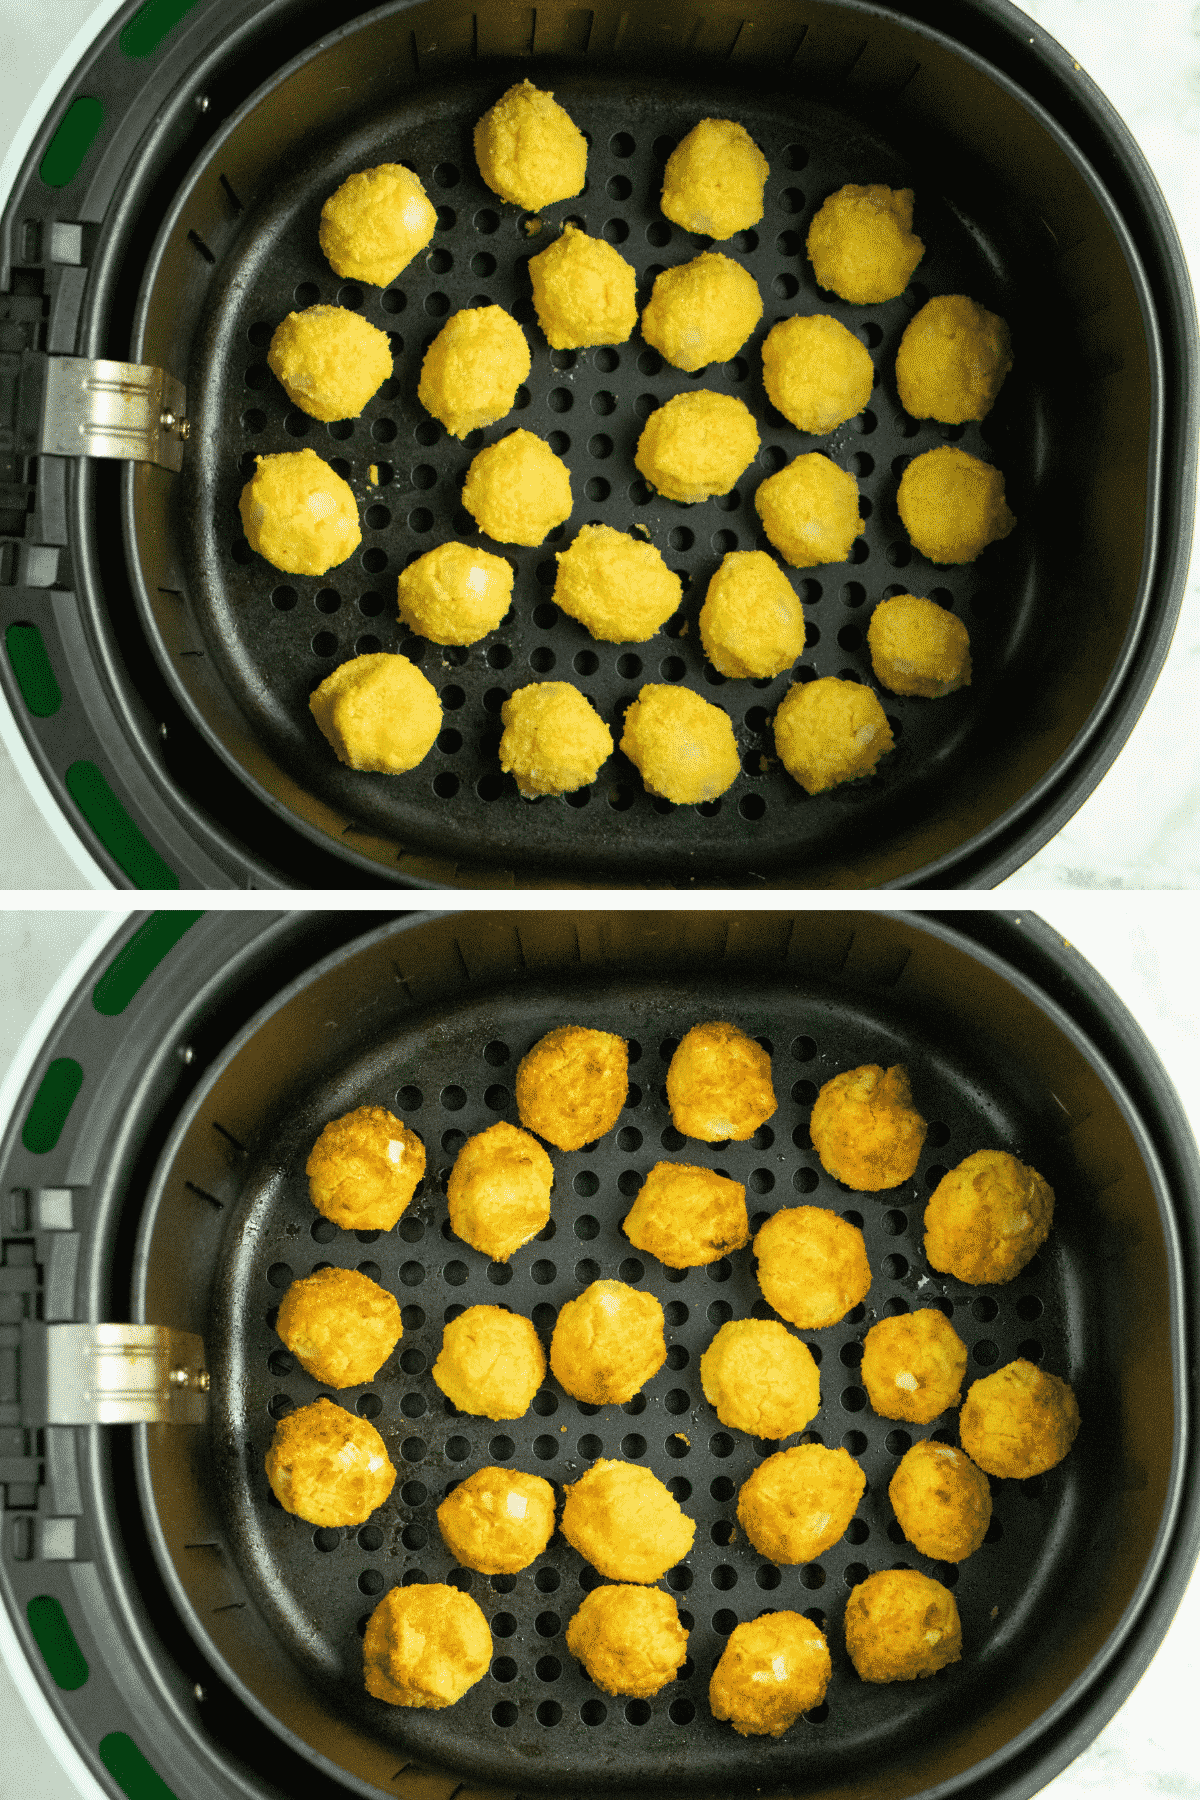 image collage showing the hush puppies in the air fryer basket before and after cooking